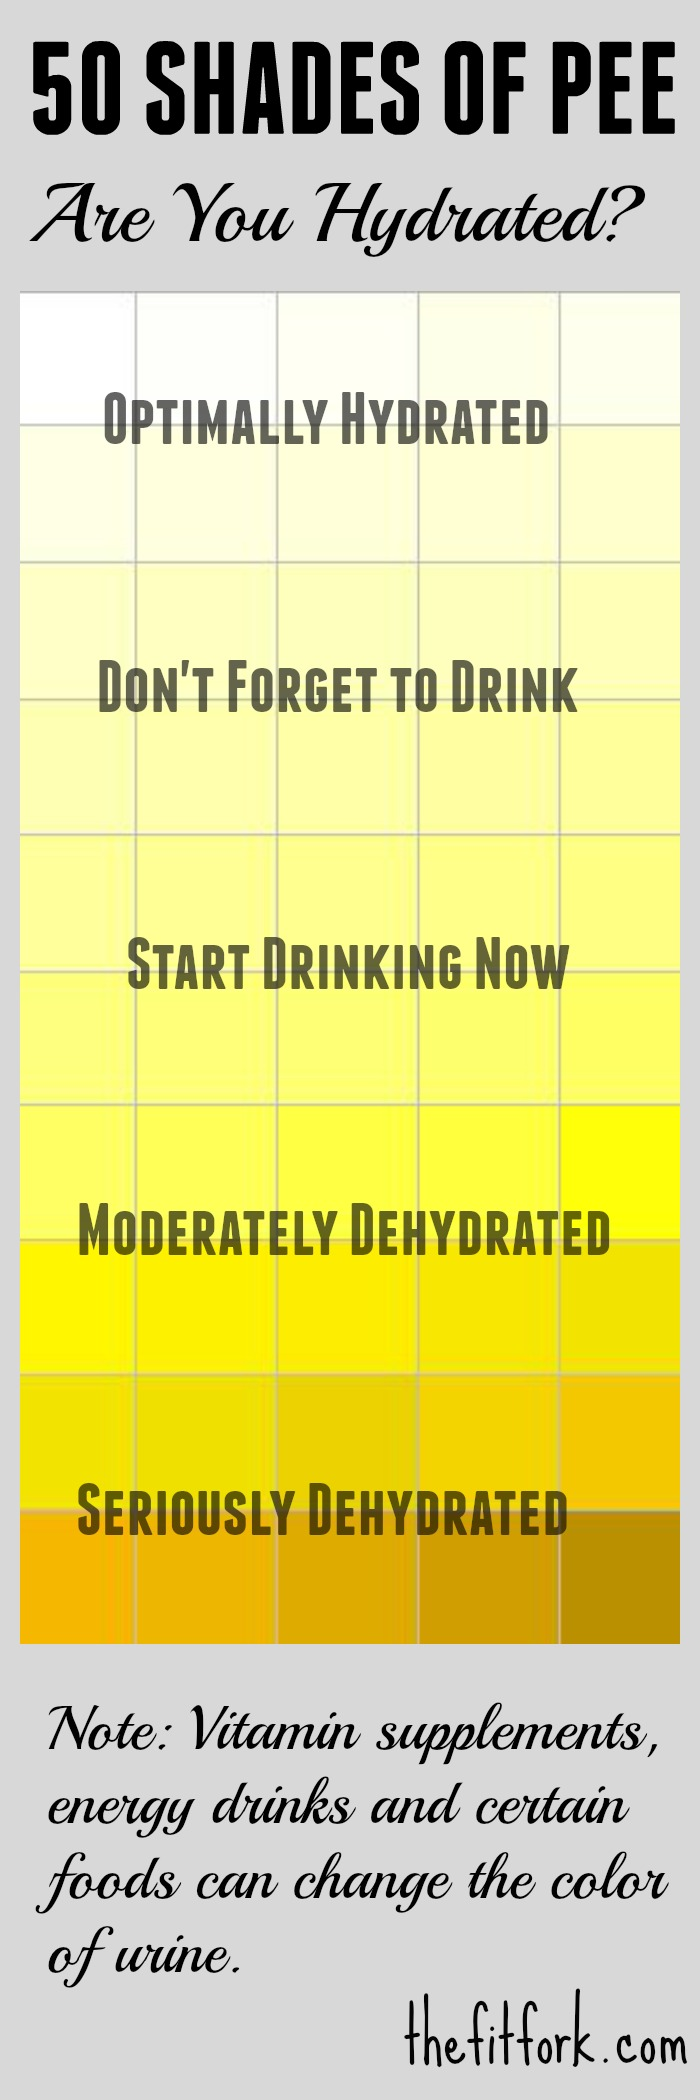 50 Shades of Pee - Urine Hydration Check - TheFitFork.com